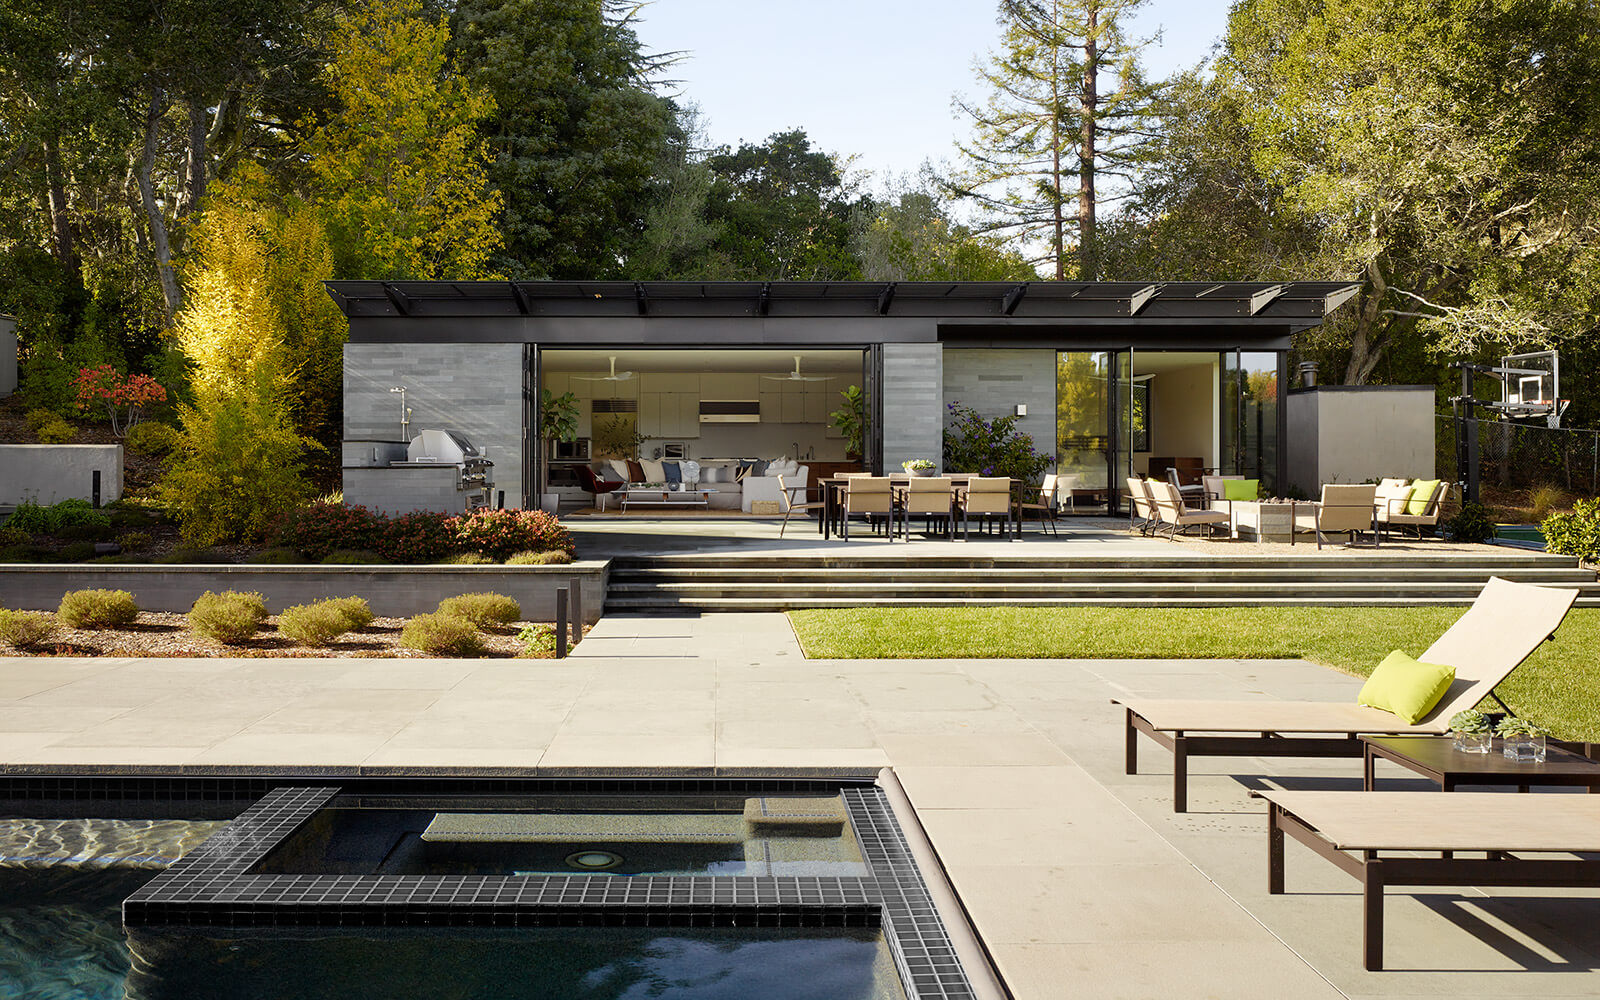 studio vara residential hillsborough pool house landscape